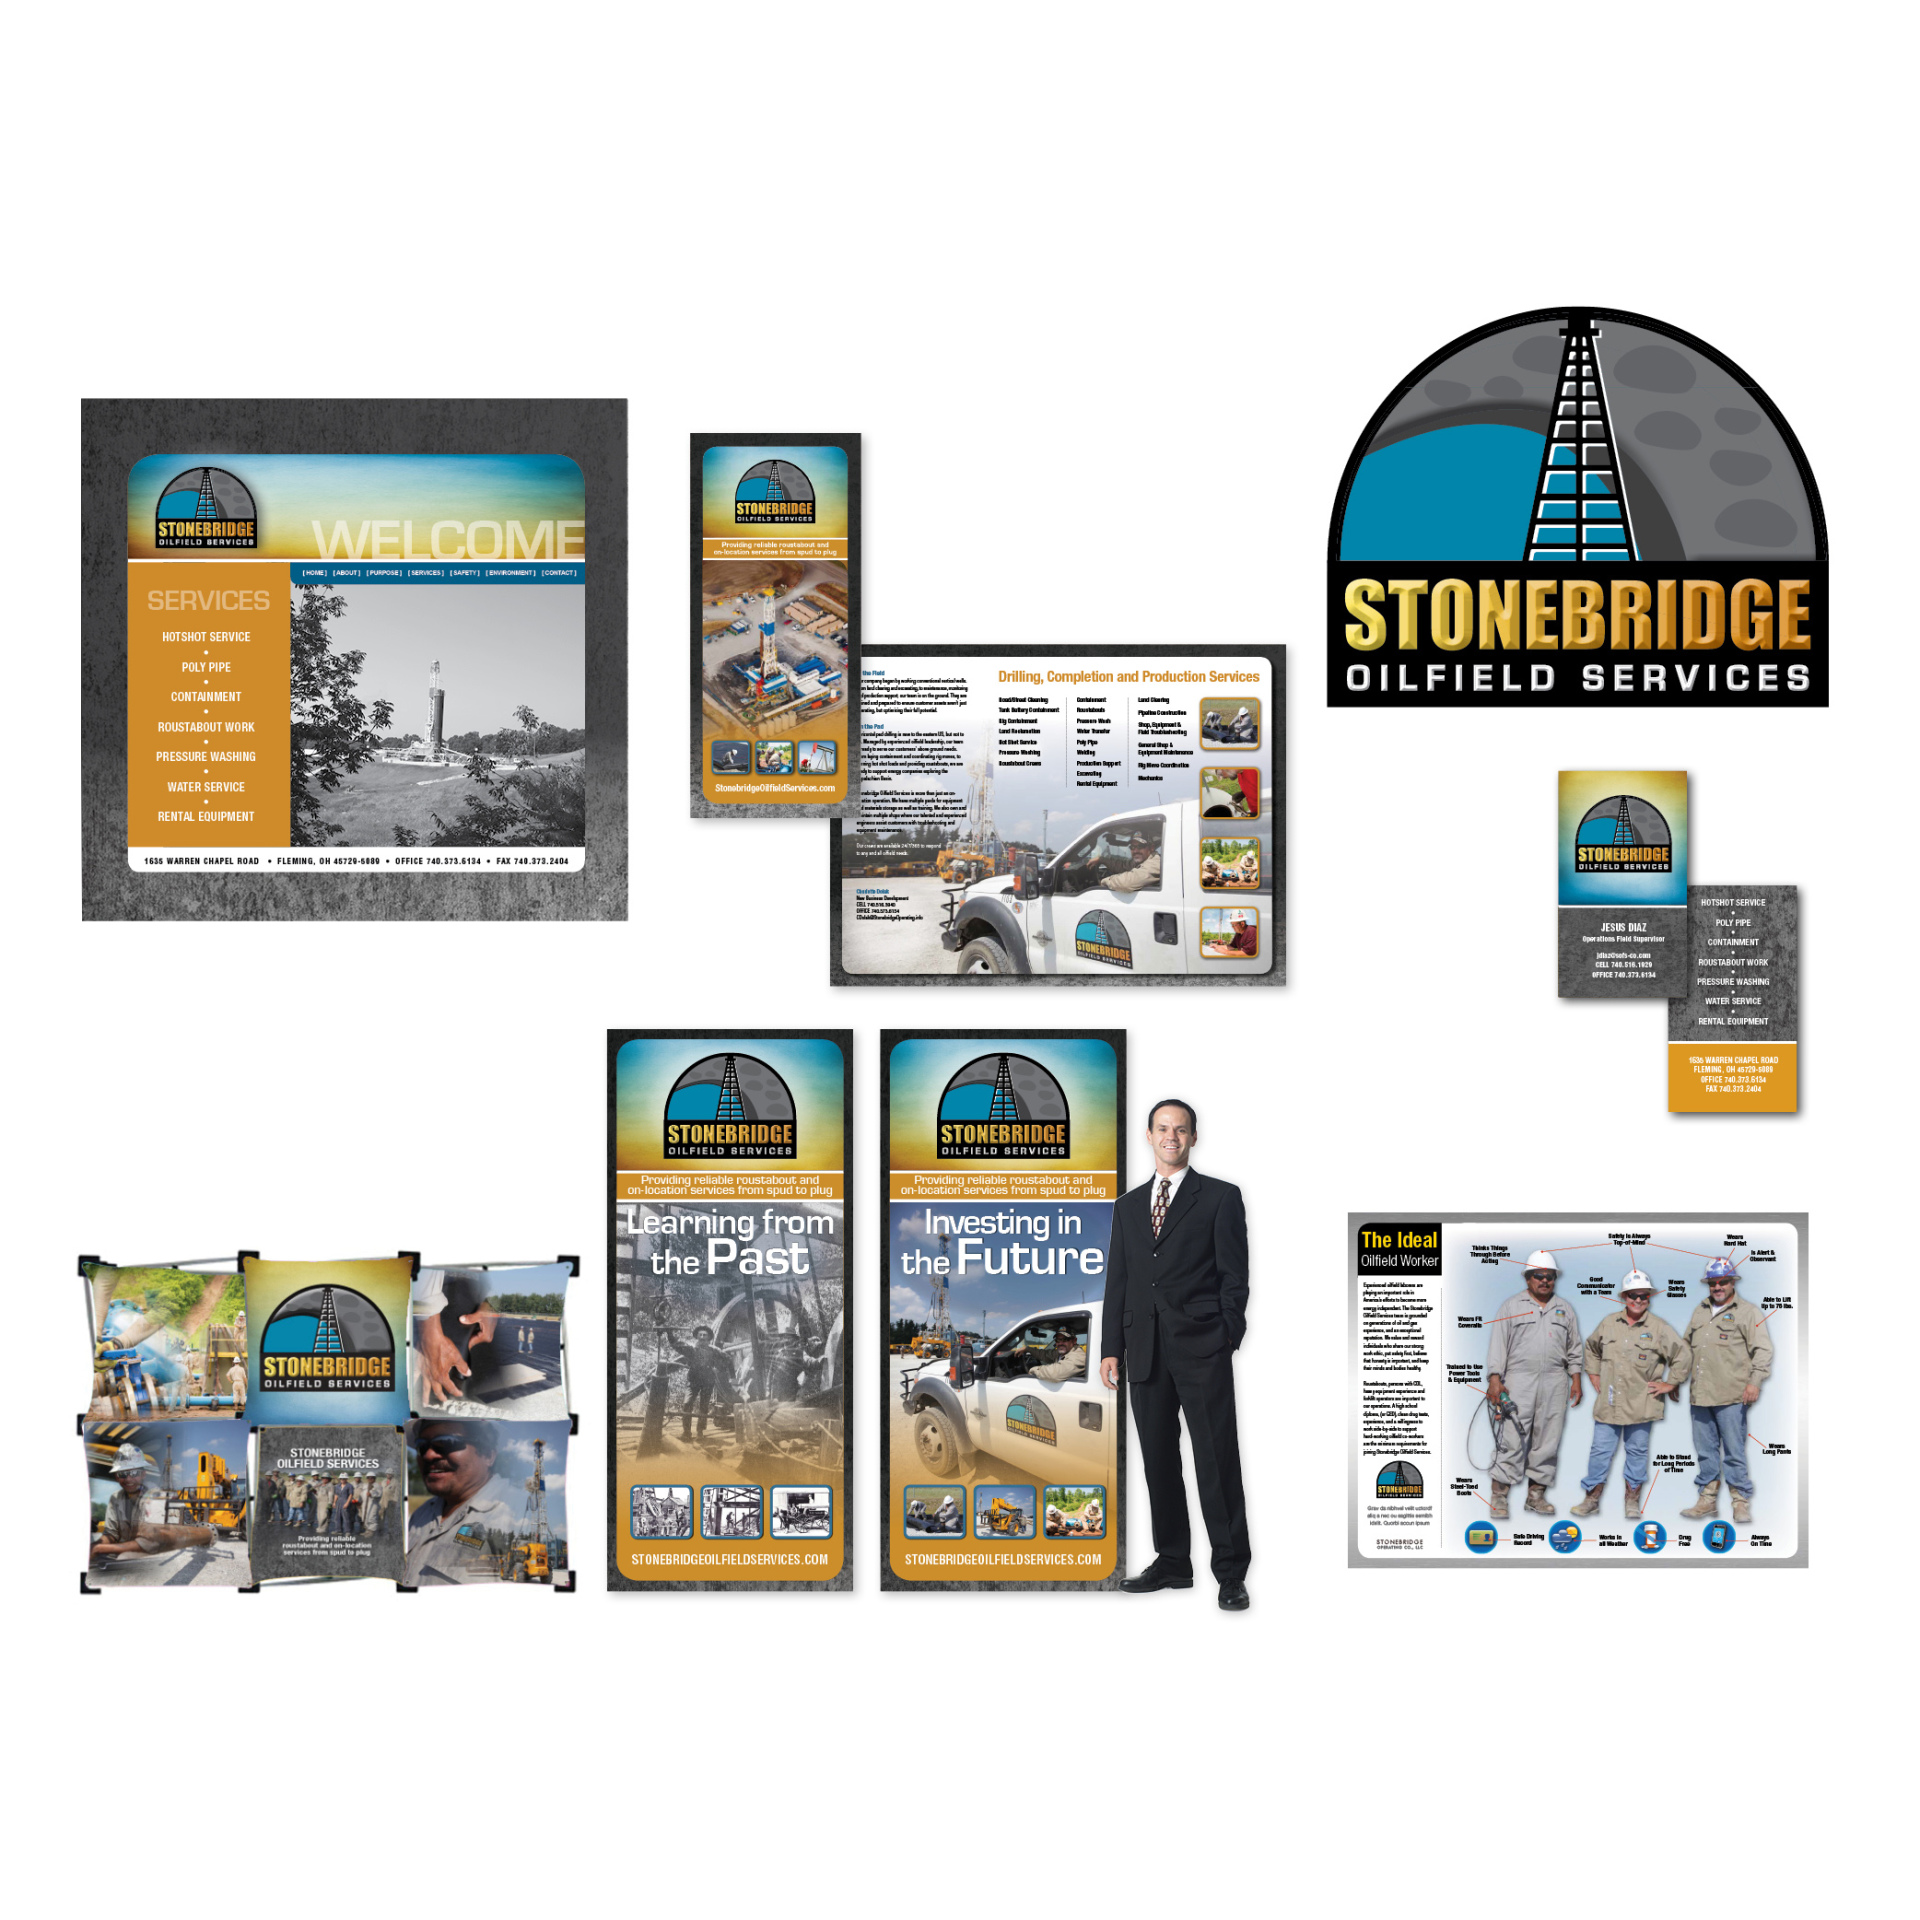 Stonebridge Oilfield Services